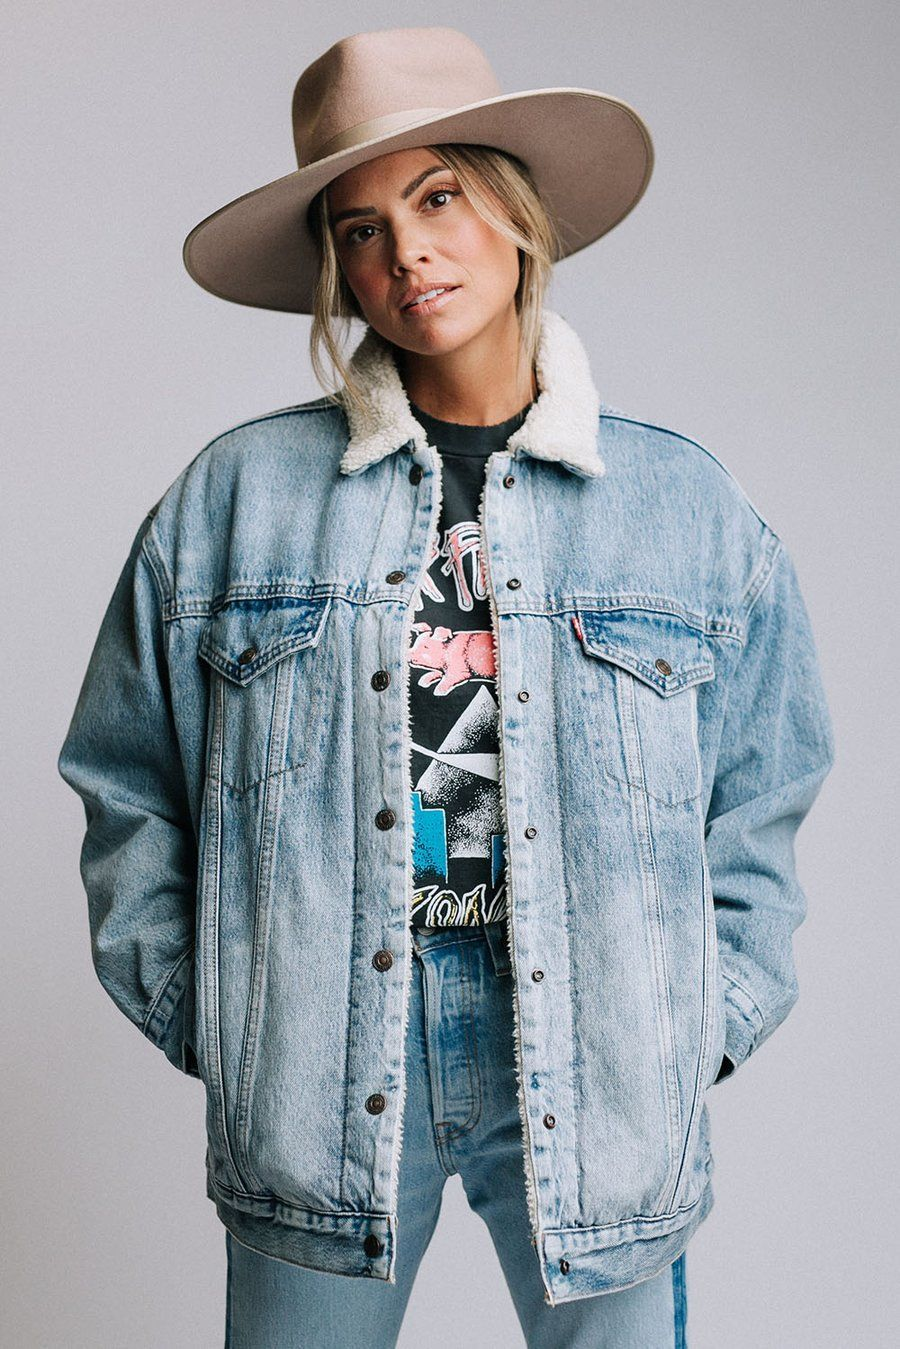 Details Classic Levi S Oversized Denim Jacket With Sherpa Lining Color Denim Blue 100 Cot Jacket Outfit Women Sherpa Lined Denim Jacket Jean Jacket Outfits [ 1349 x 900 Pixel ]